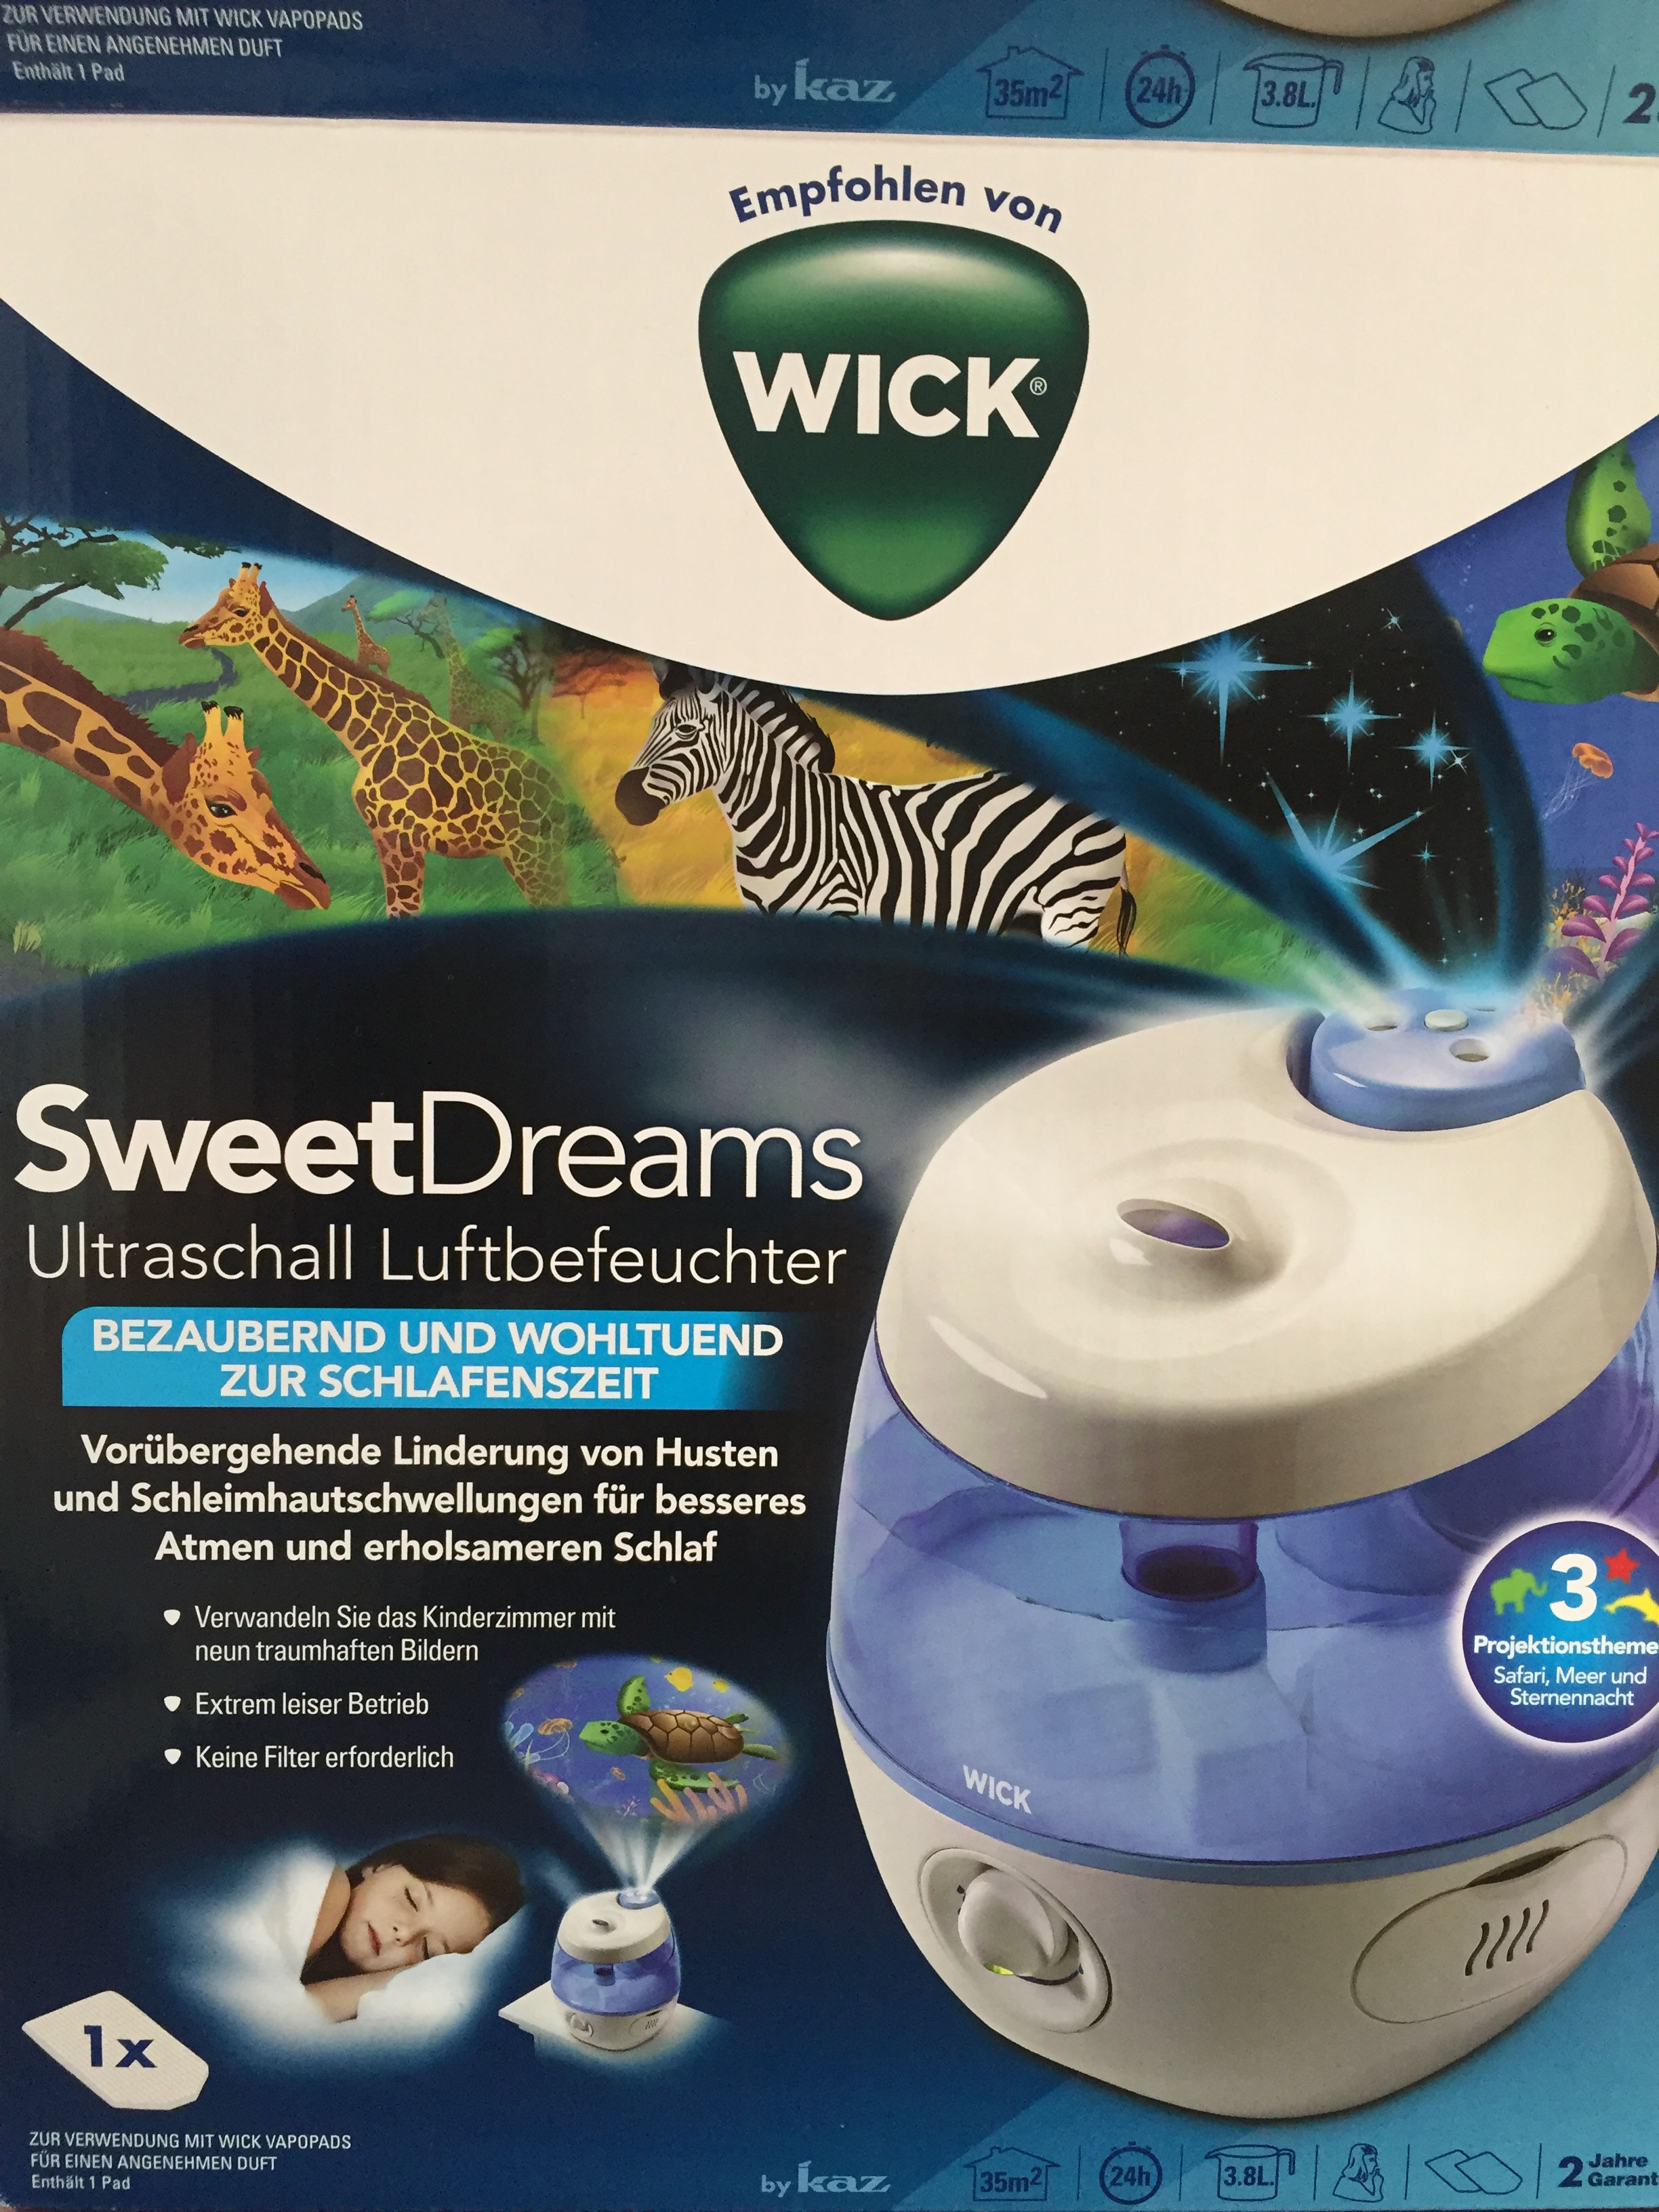 Wick Luftbefeuchter Sweetdreams Ultraschall Luftbefeuchter Wick Sartison Com